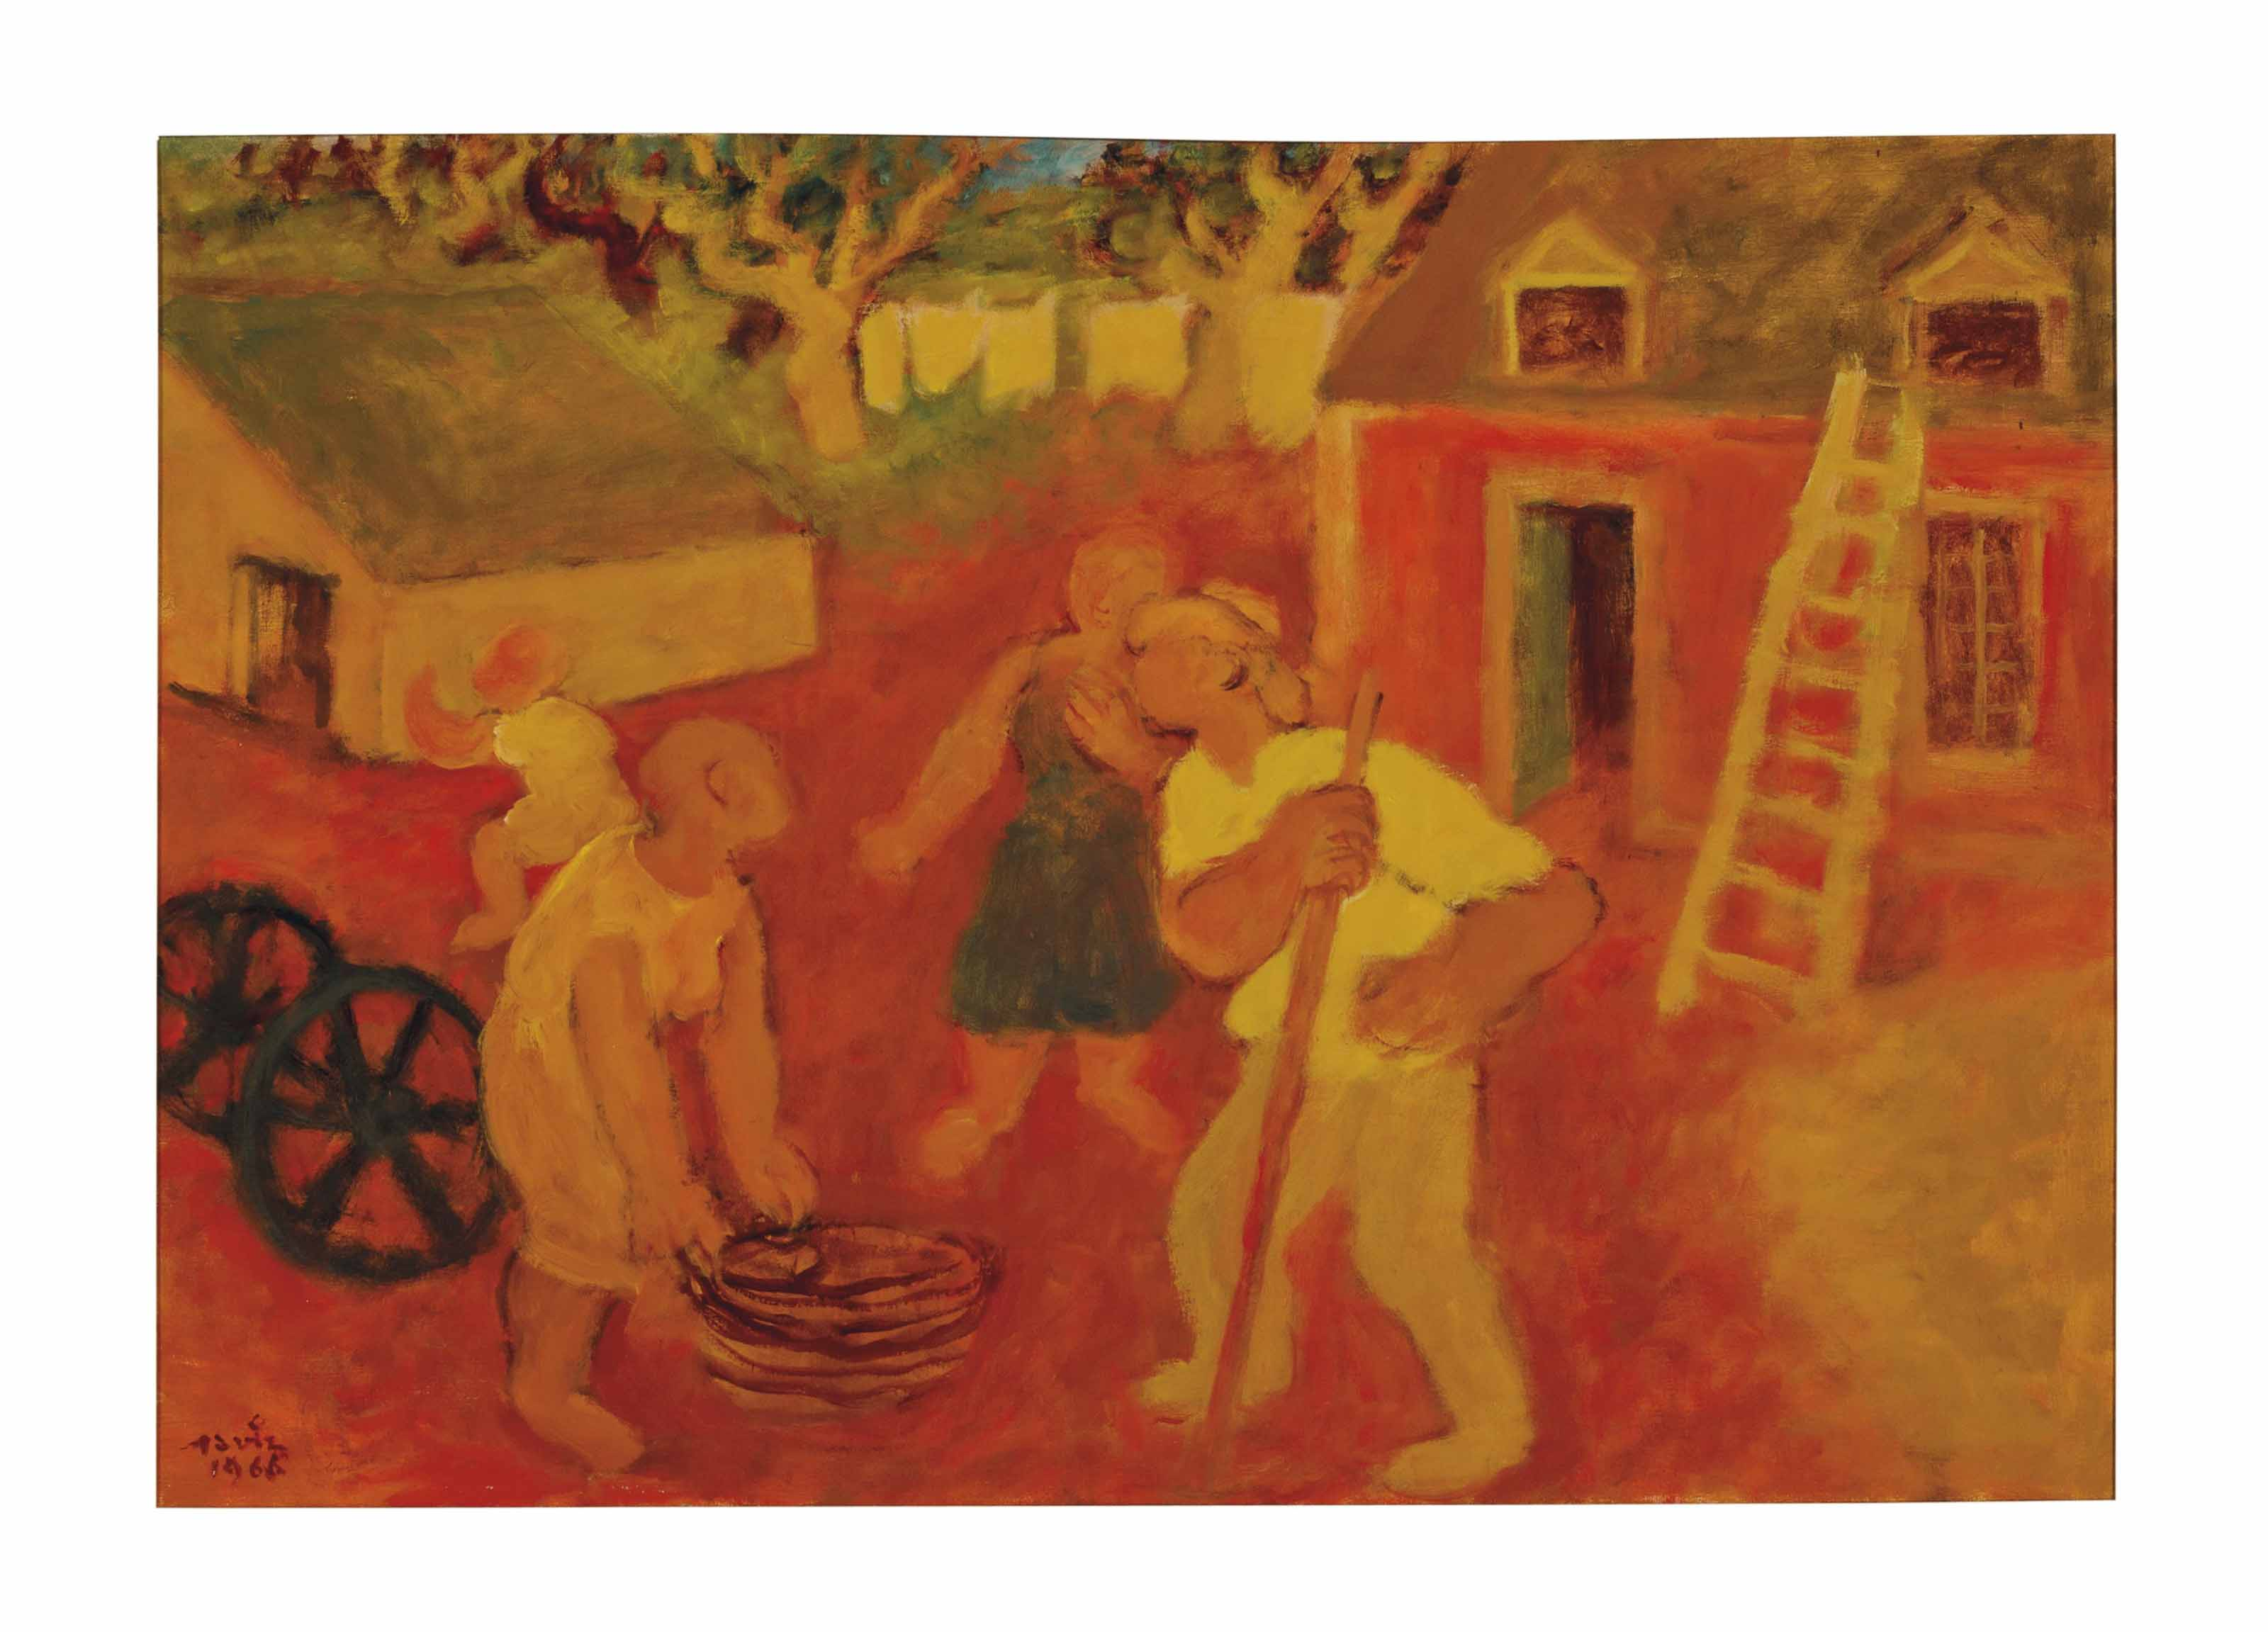 Untitled (daily chores)